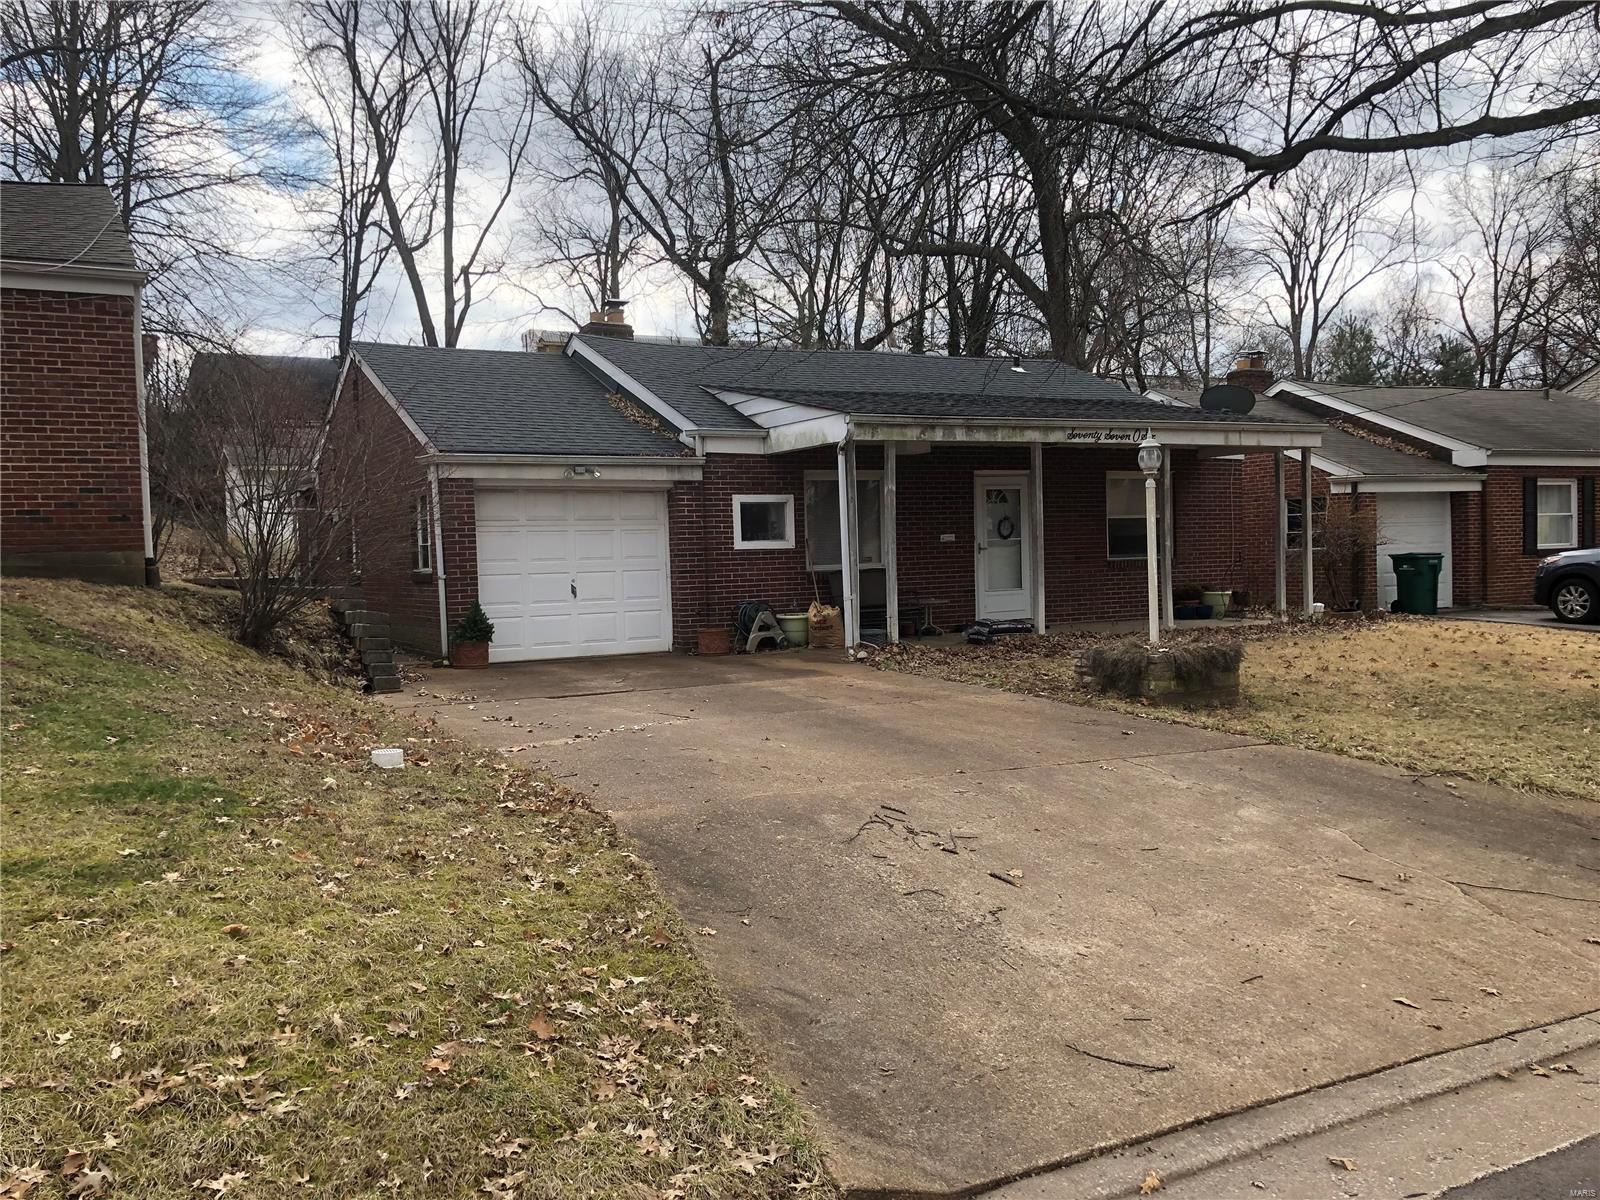 7706 Arlington Avenue, Shrewsbury, MO 63119 - MLS#: 20012130